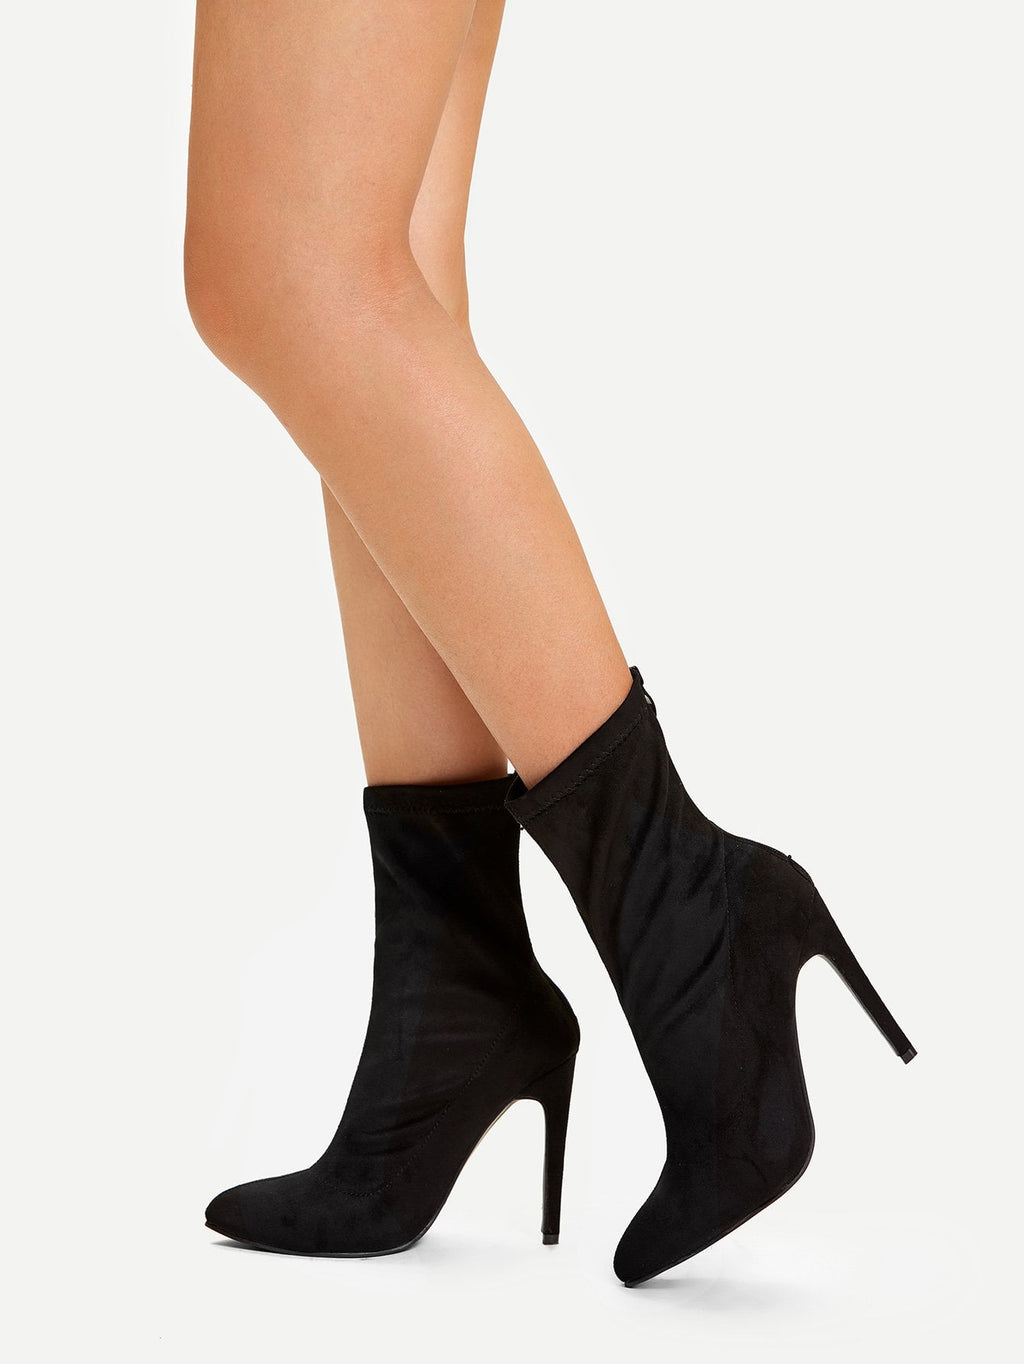 Formal Boots - Back Zipper Stiletto Heeled Boots